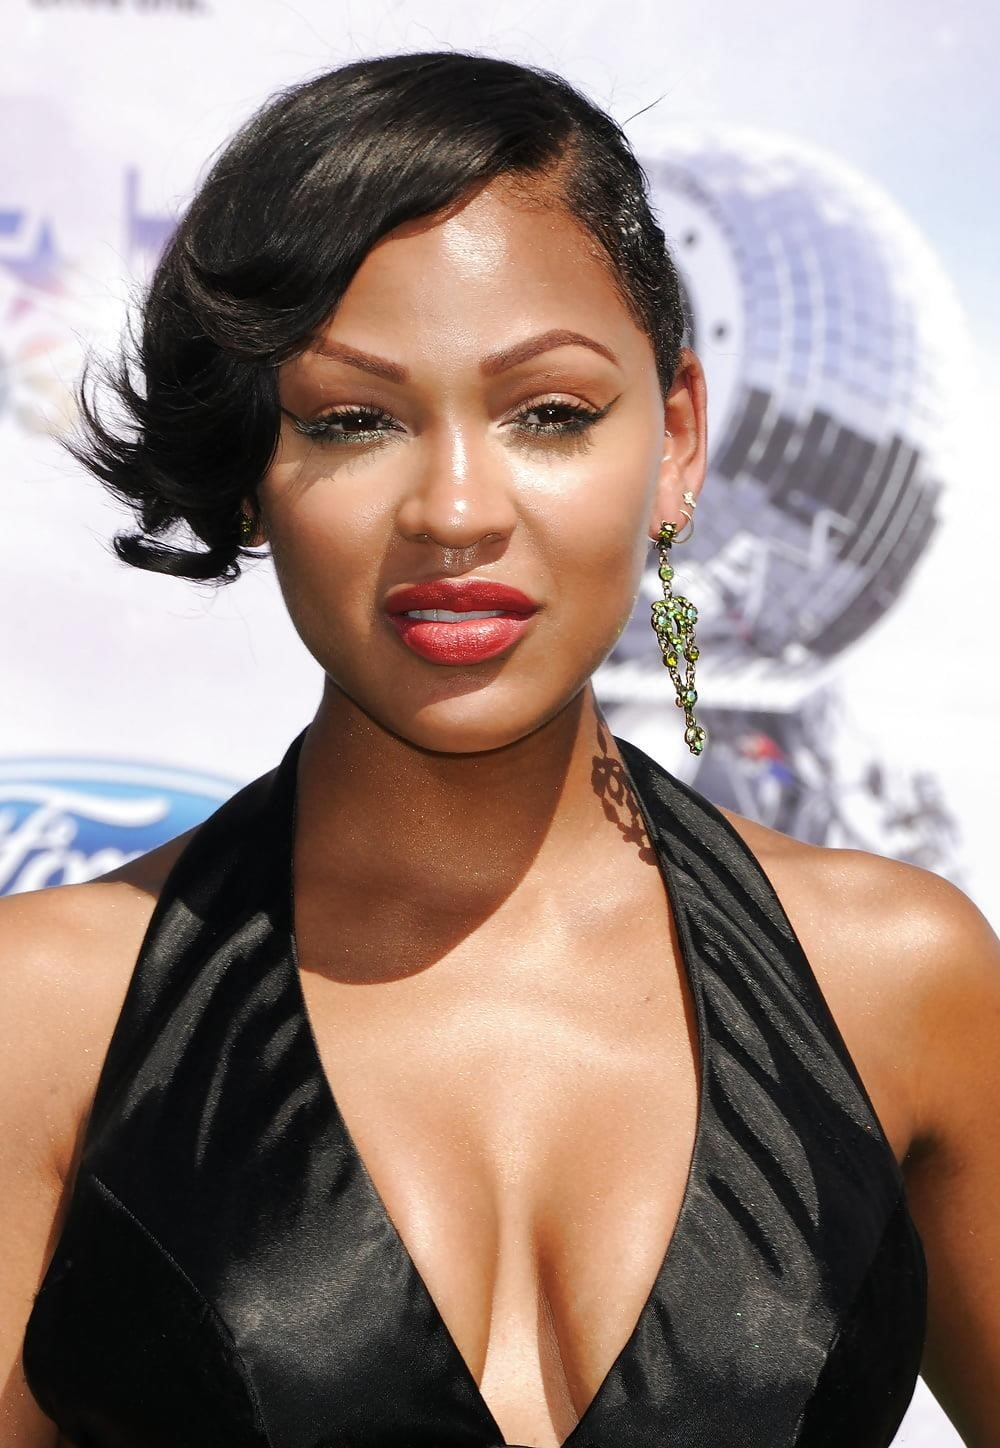 Meagan good nude pictures-5923